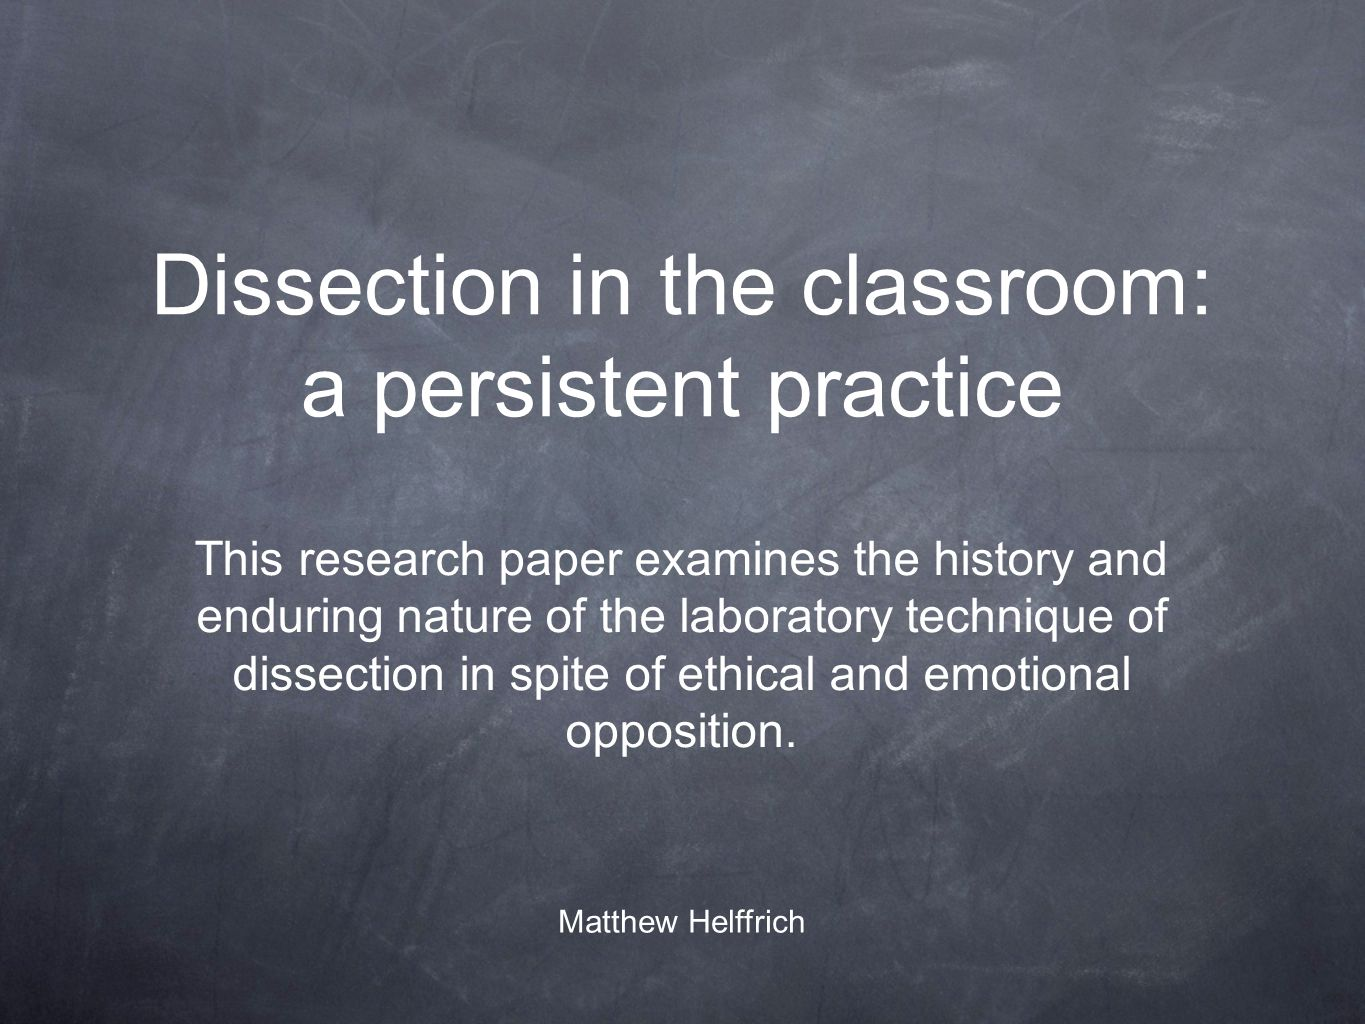 Dissection in the classroom: a persistent practice This research paper examines the history and enduring nature of the laboratory technique of dissection in spite of ethical and emotional opposition.